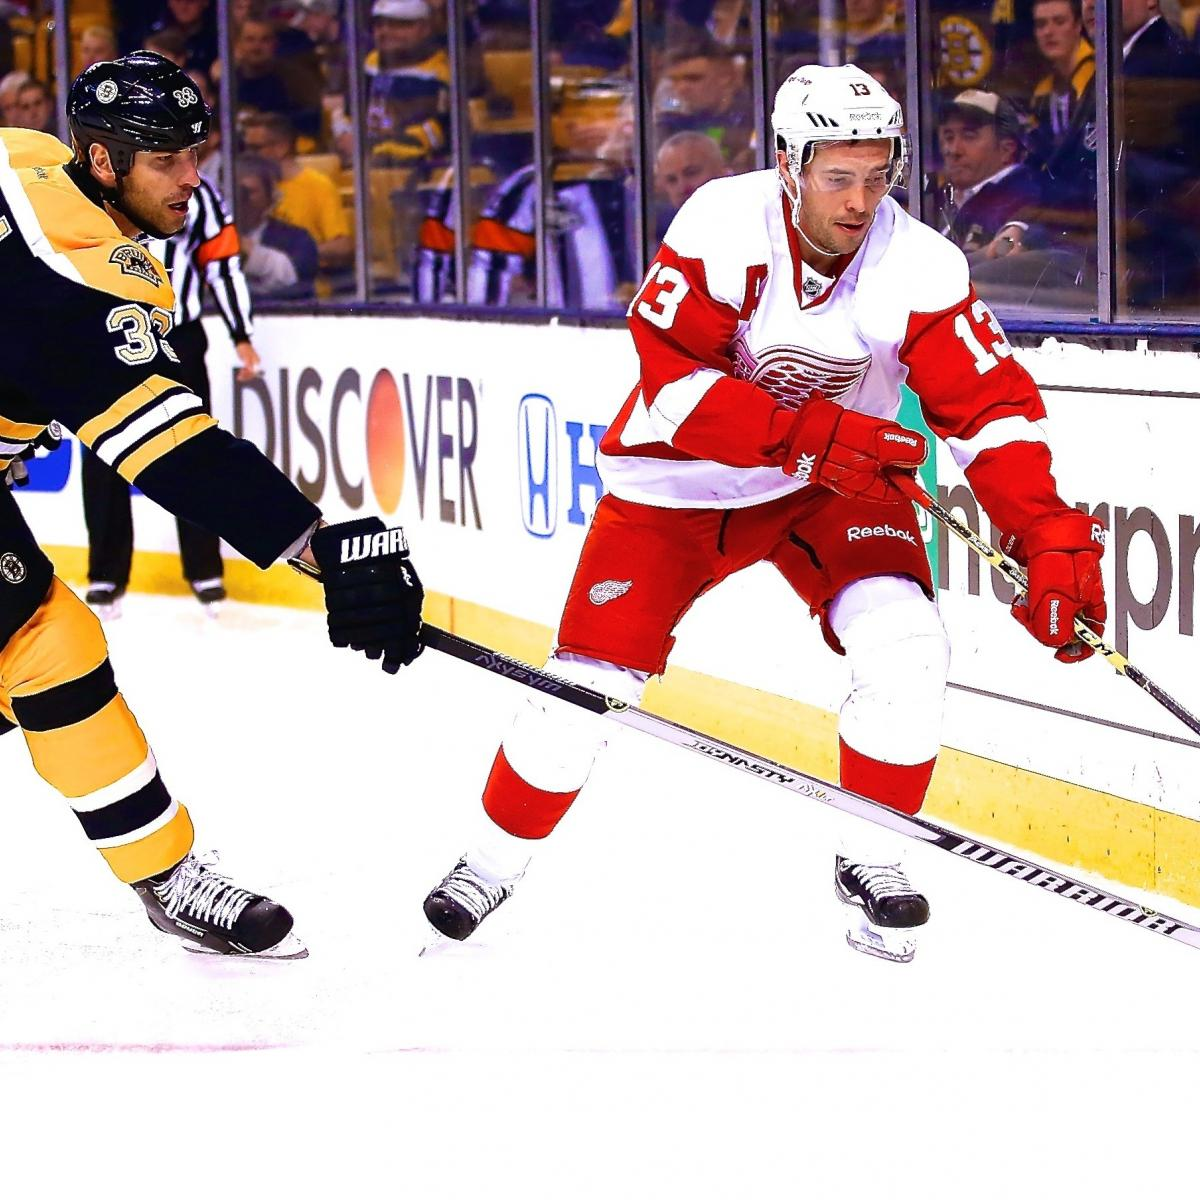 Detroit Red Wings Vs. Boston Bruins Game 2: Live Score And